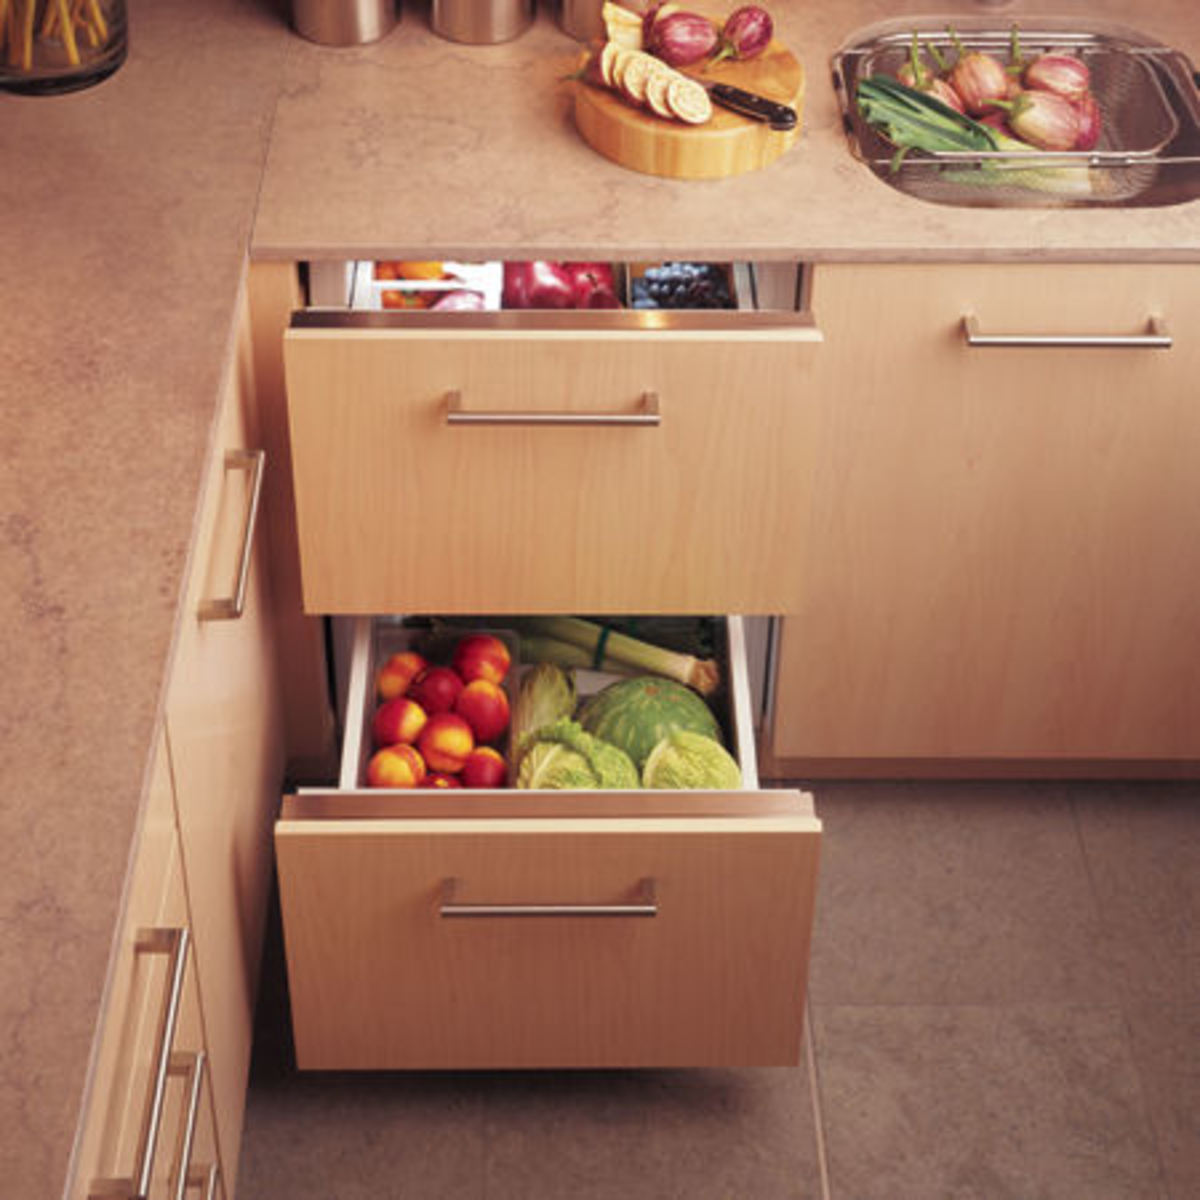 Latest Trends: Under Counter Refrigerator